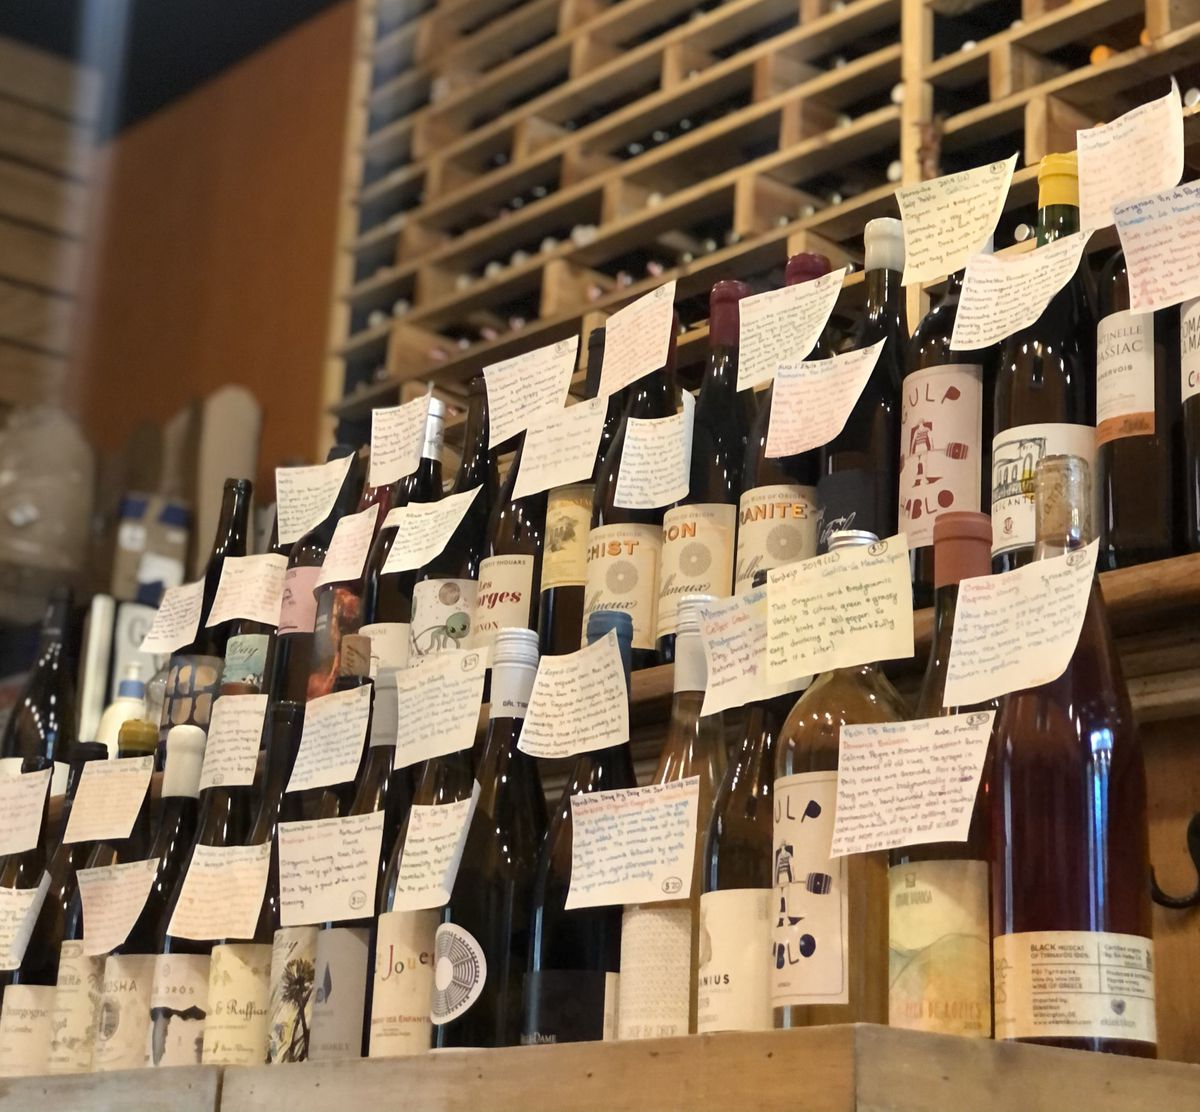 Wine bottles stacked on descending ledges with index card descriptions on the front of the bottles